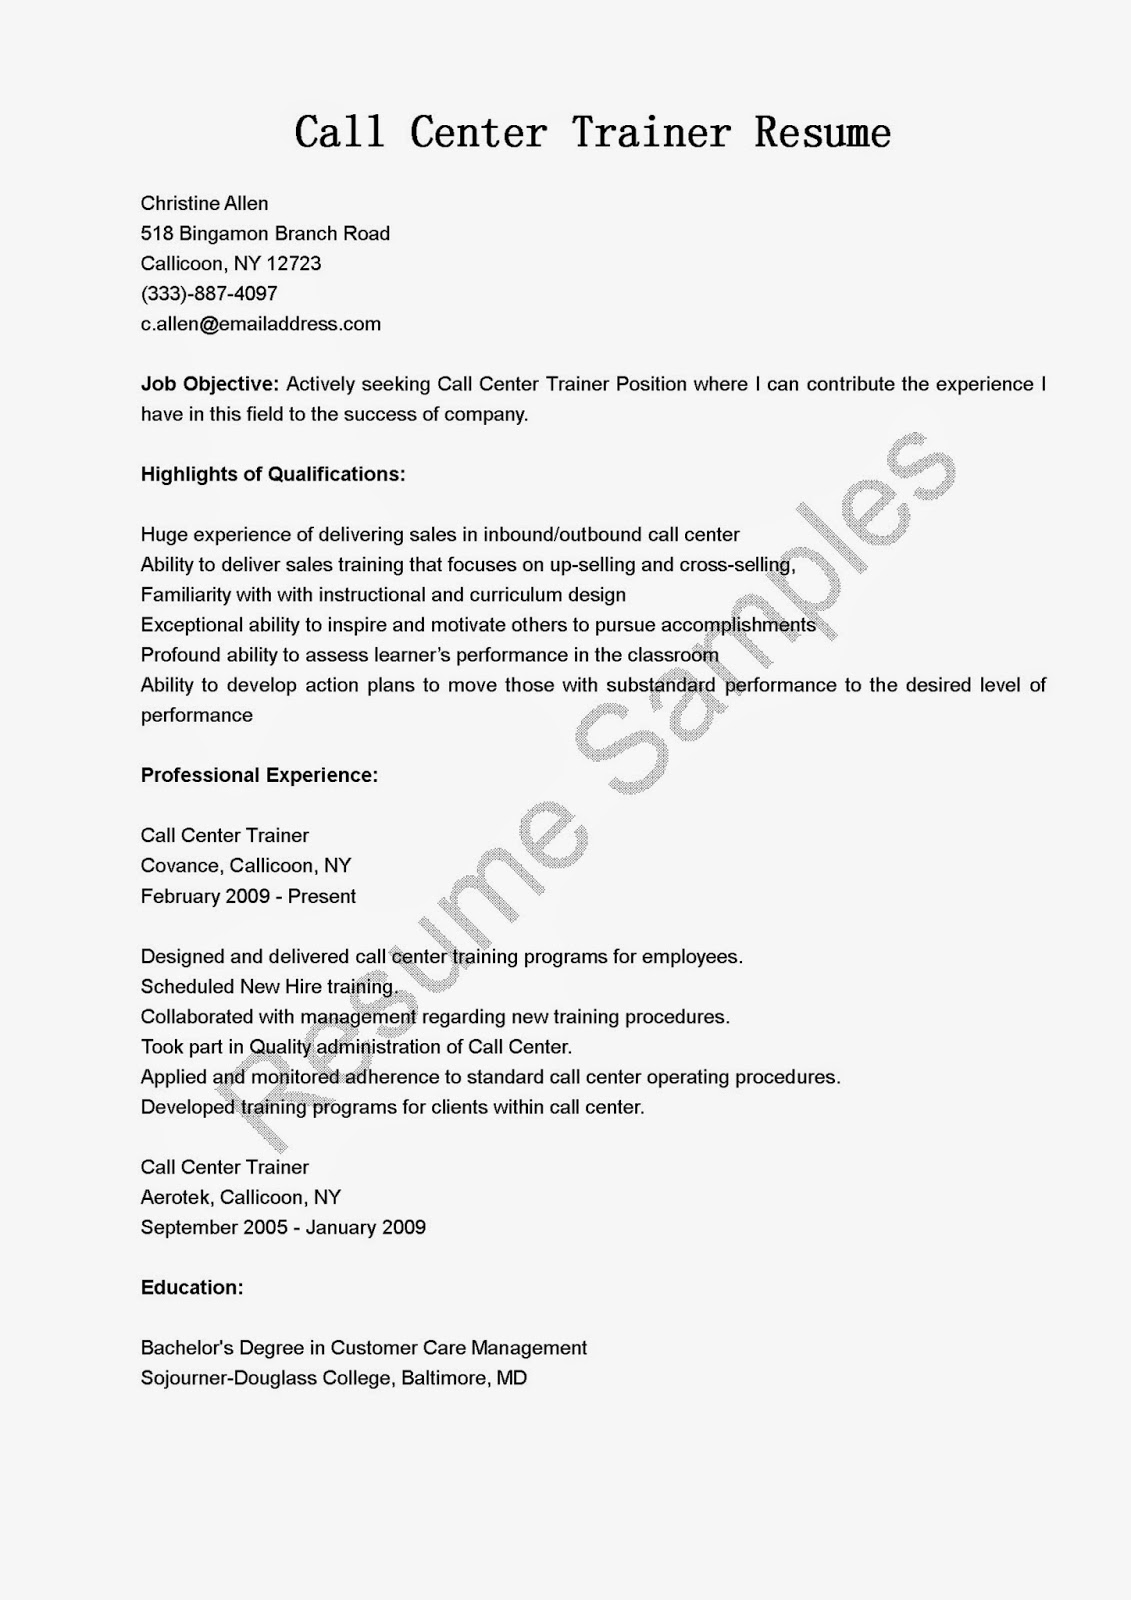 Call Center Objective For Resume Resume Samples Call Center Trainer Resume Sample